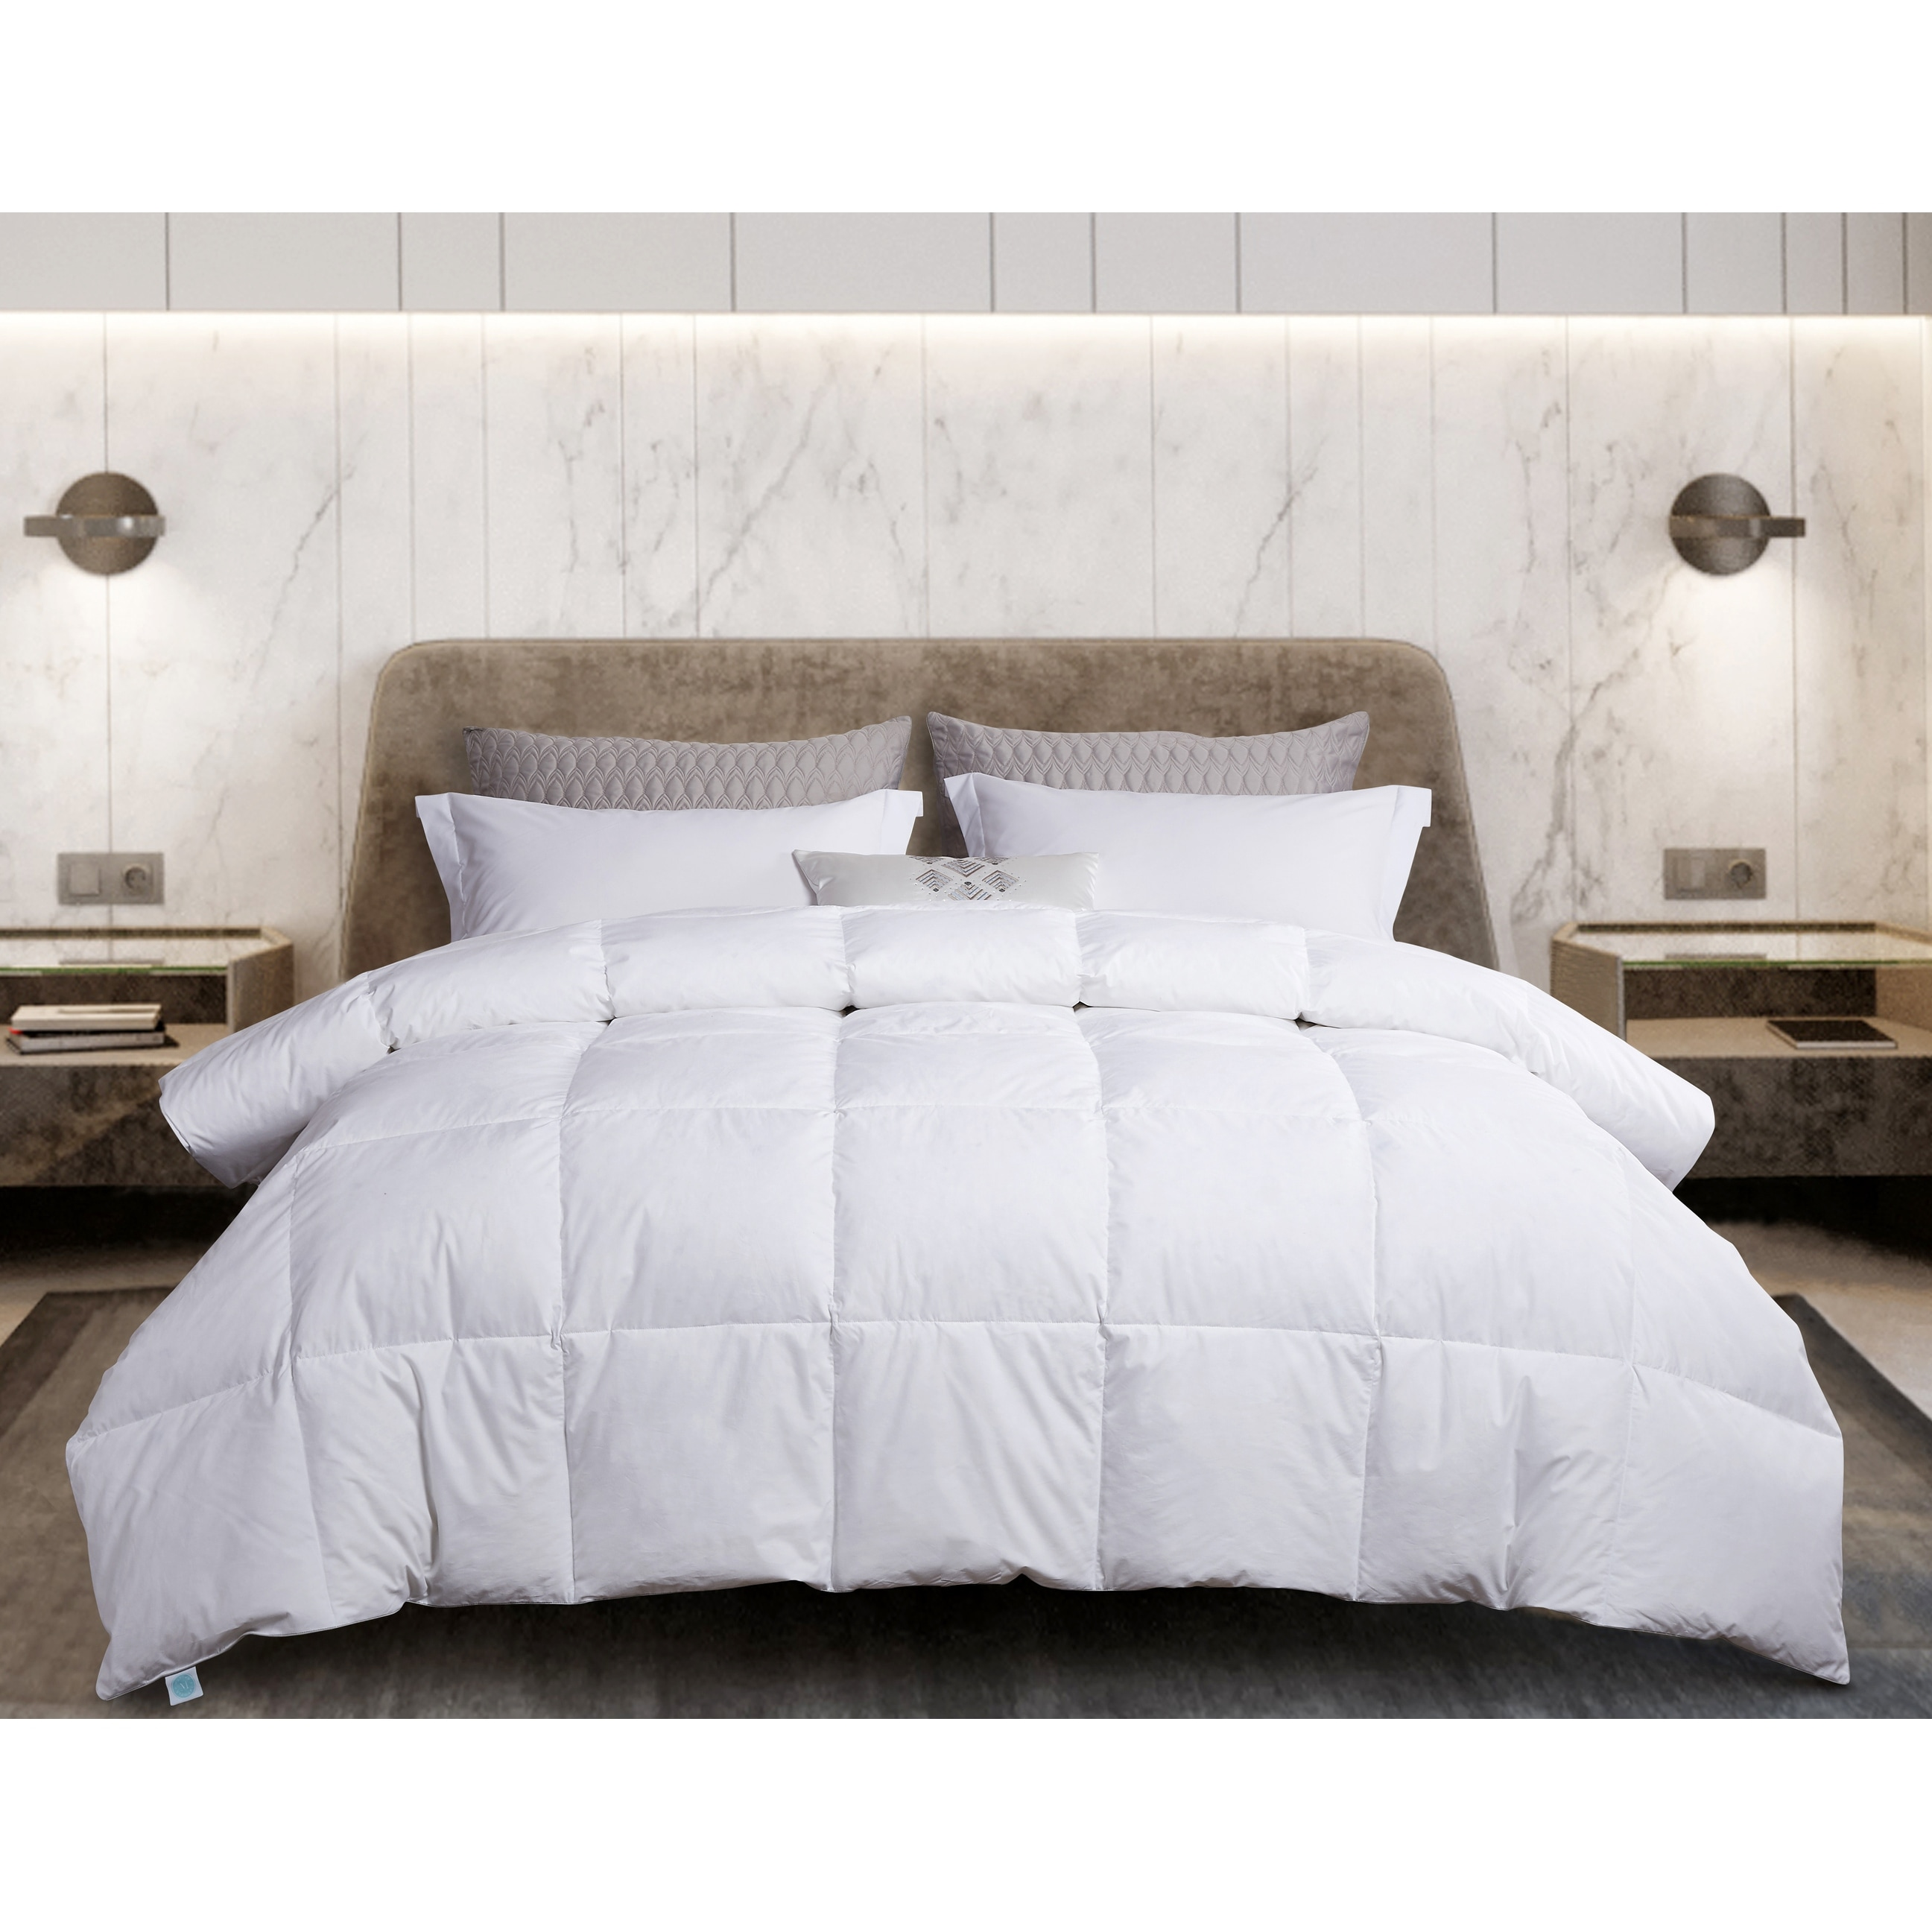 Martha Stewart White Goose Feather And White Goose Down Comforter On Sale Overstock 31210103